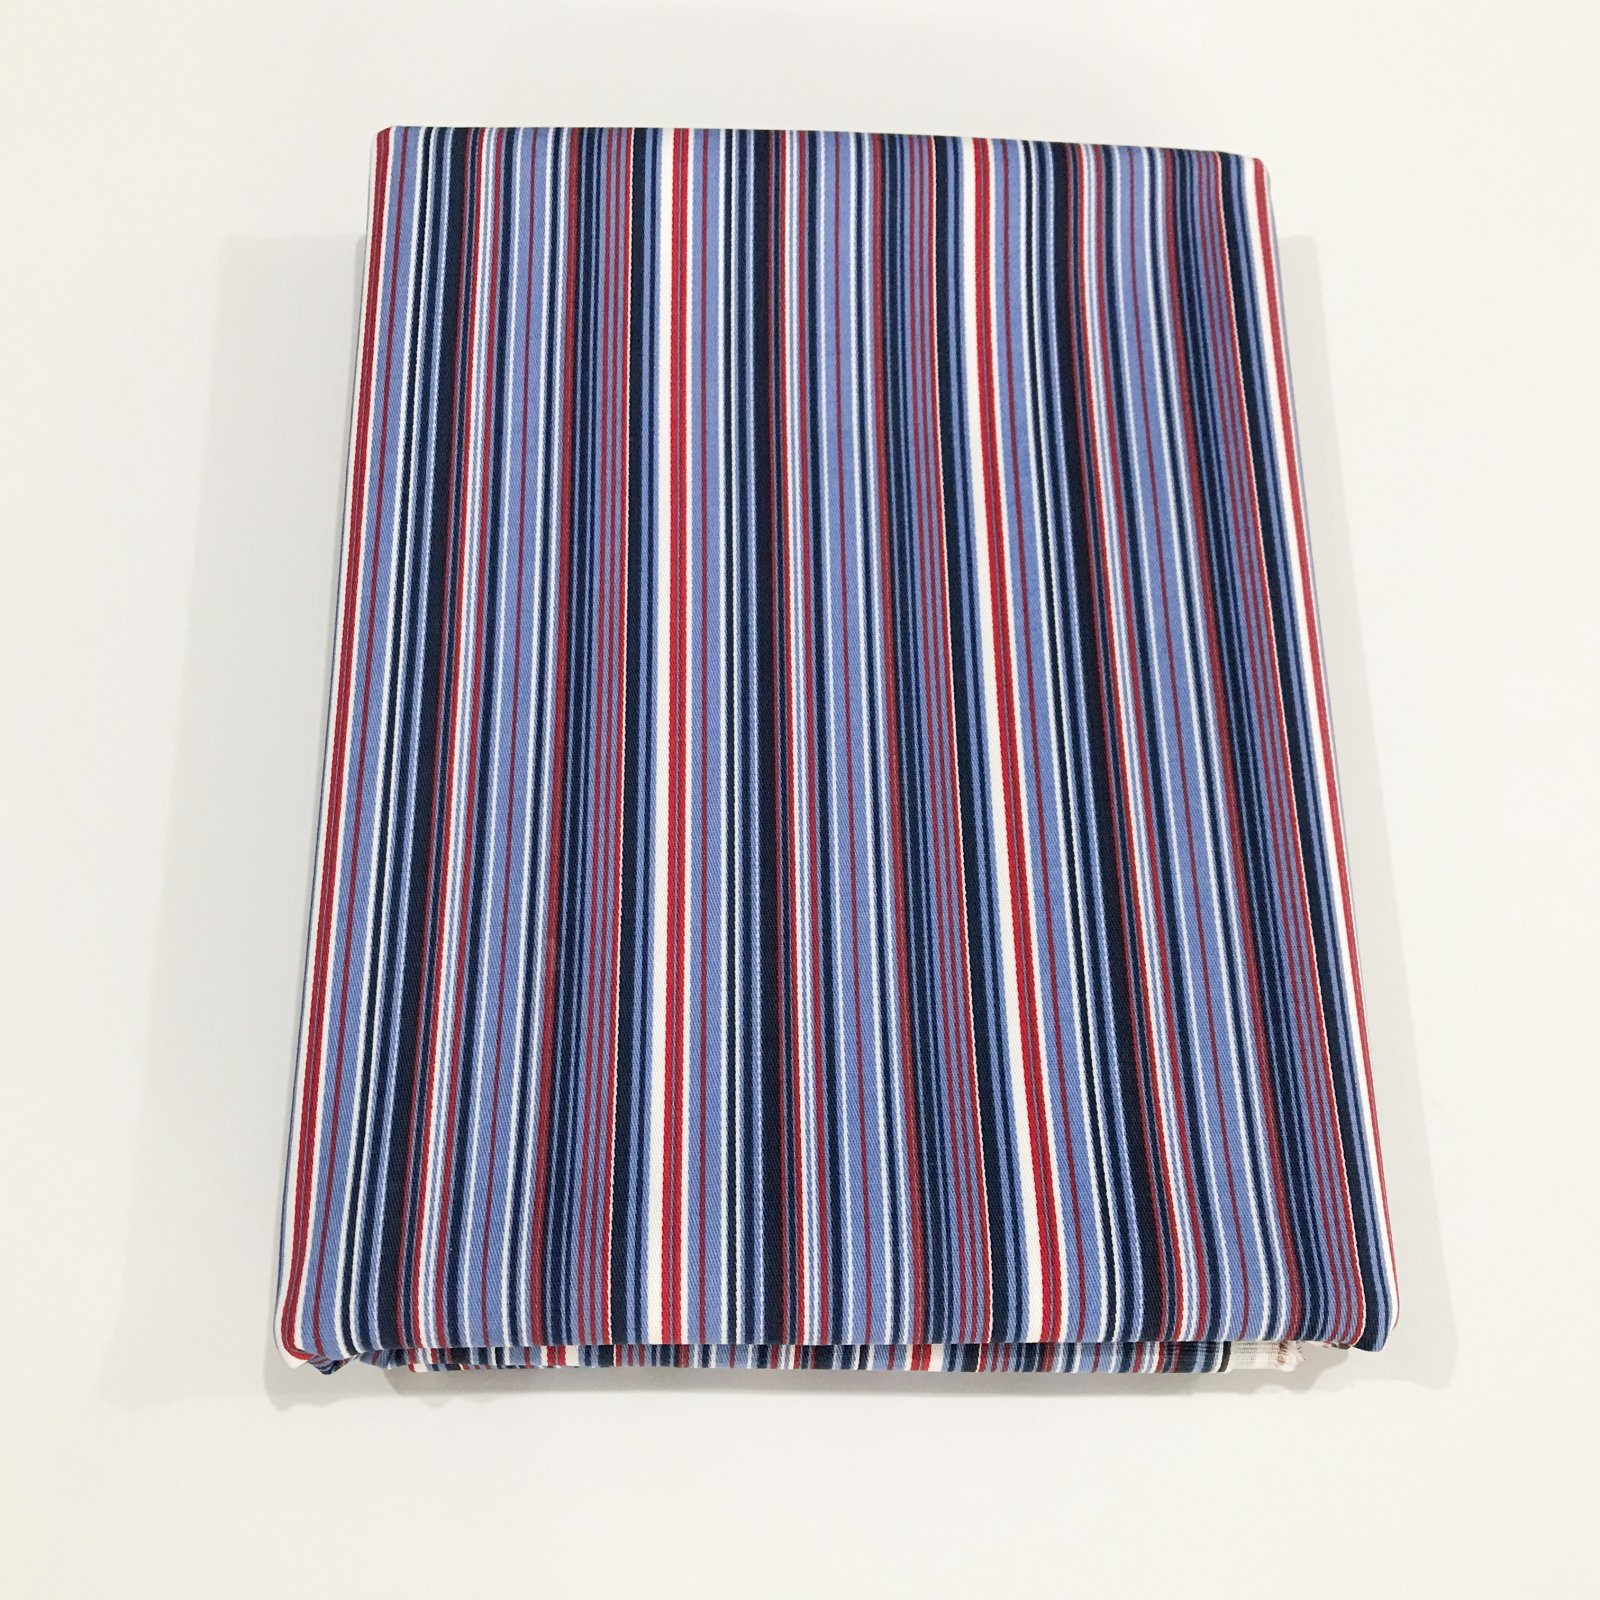 2 1/2 yards - Stretch Twill - 70's Red, White and Blue Stripe